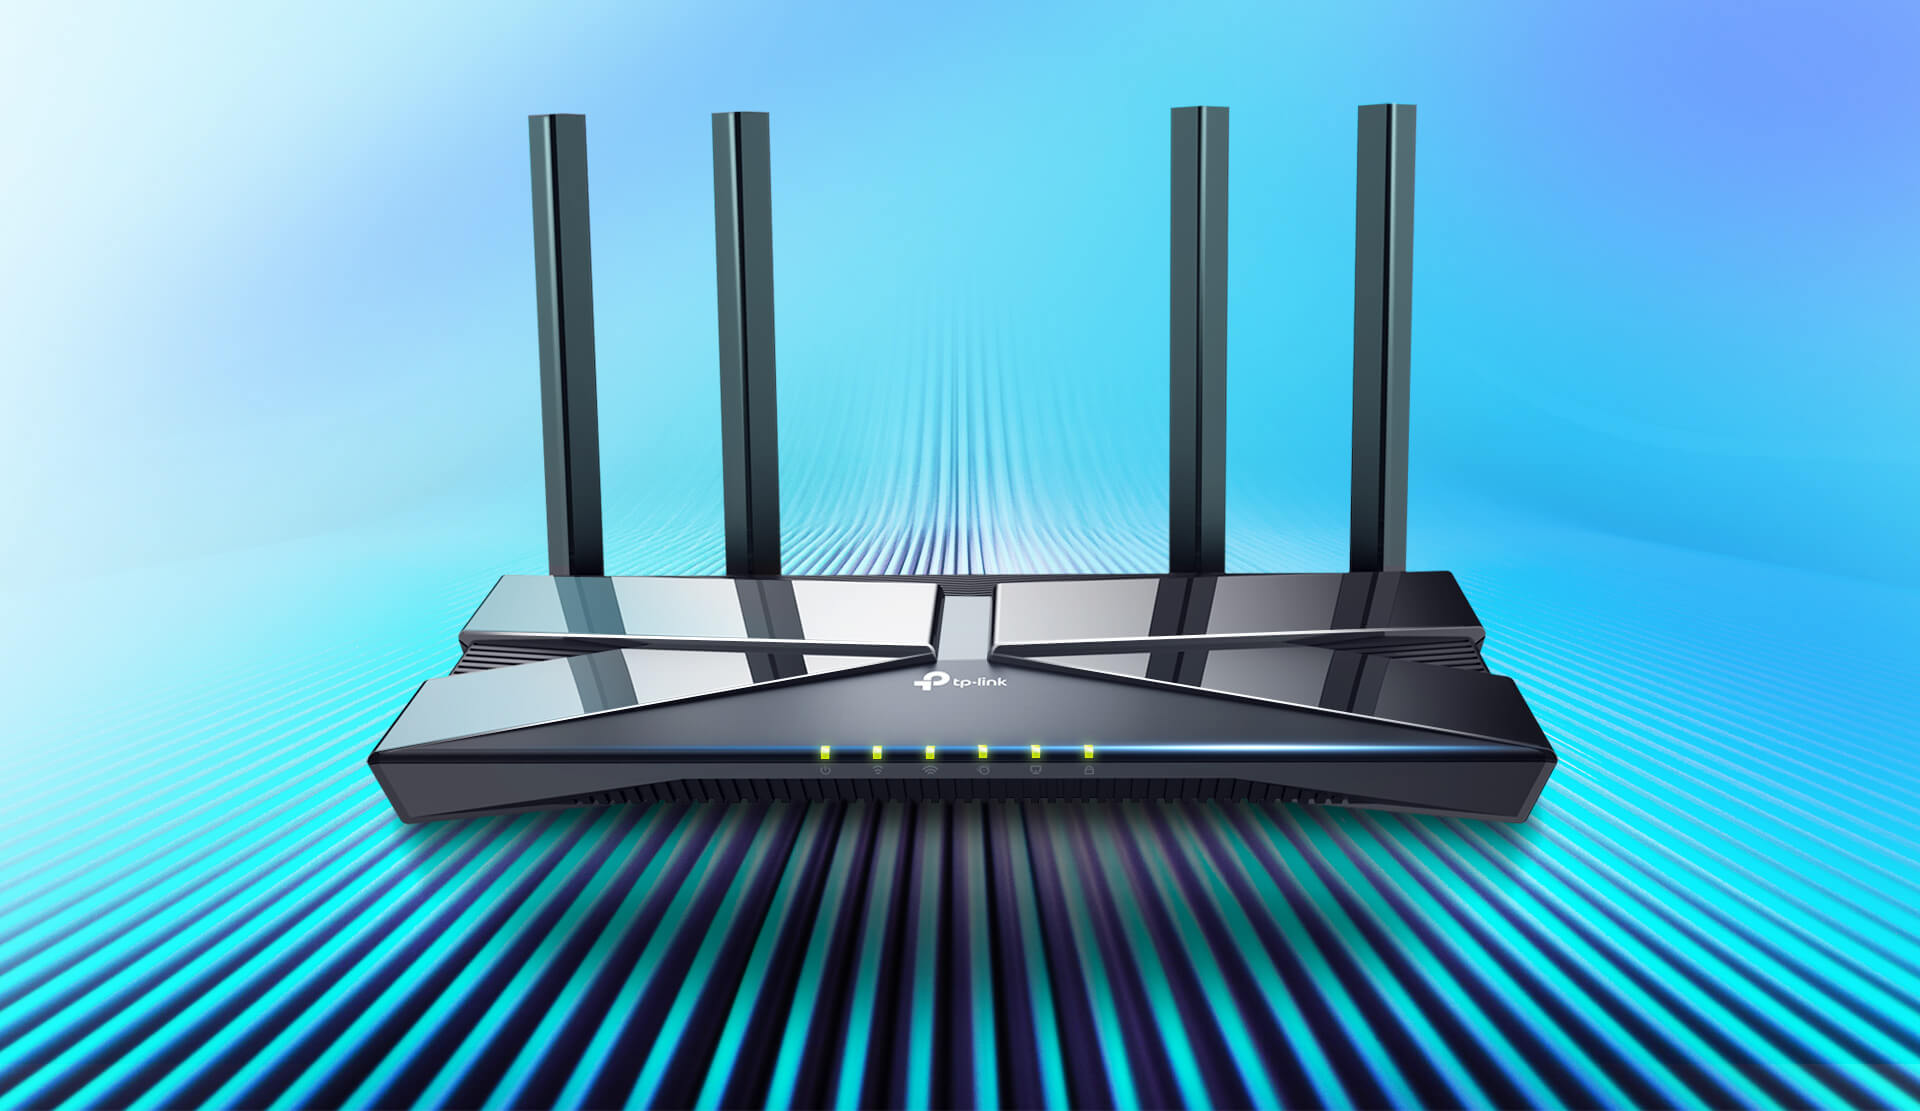 router wi-fi 6 tp-link pemanah ax10